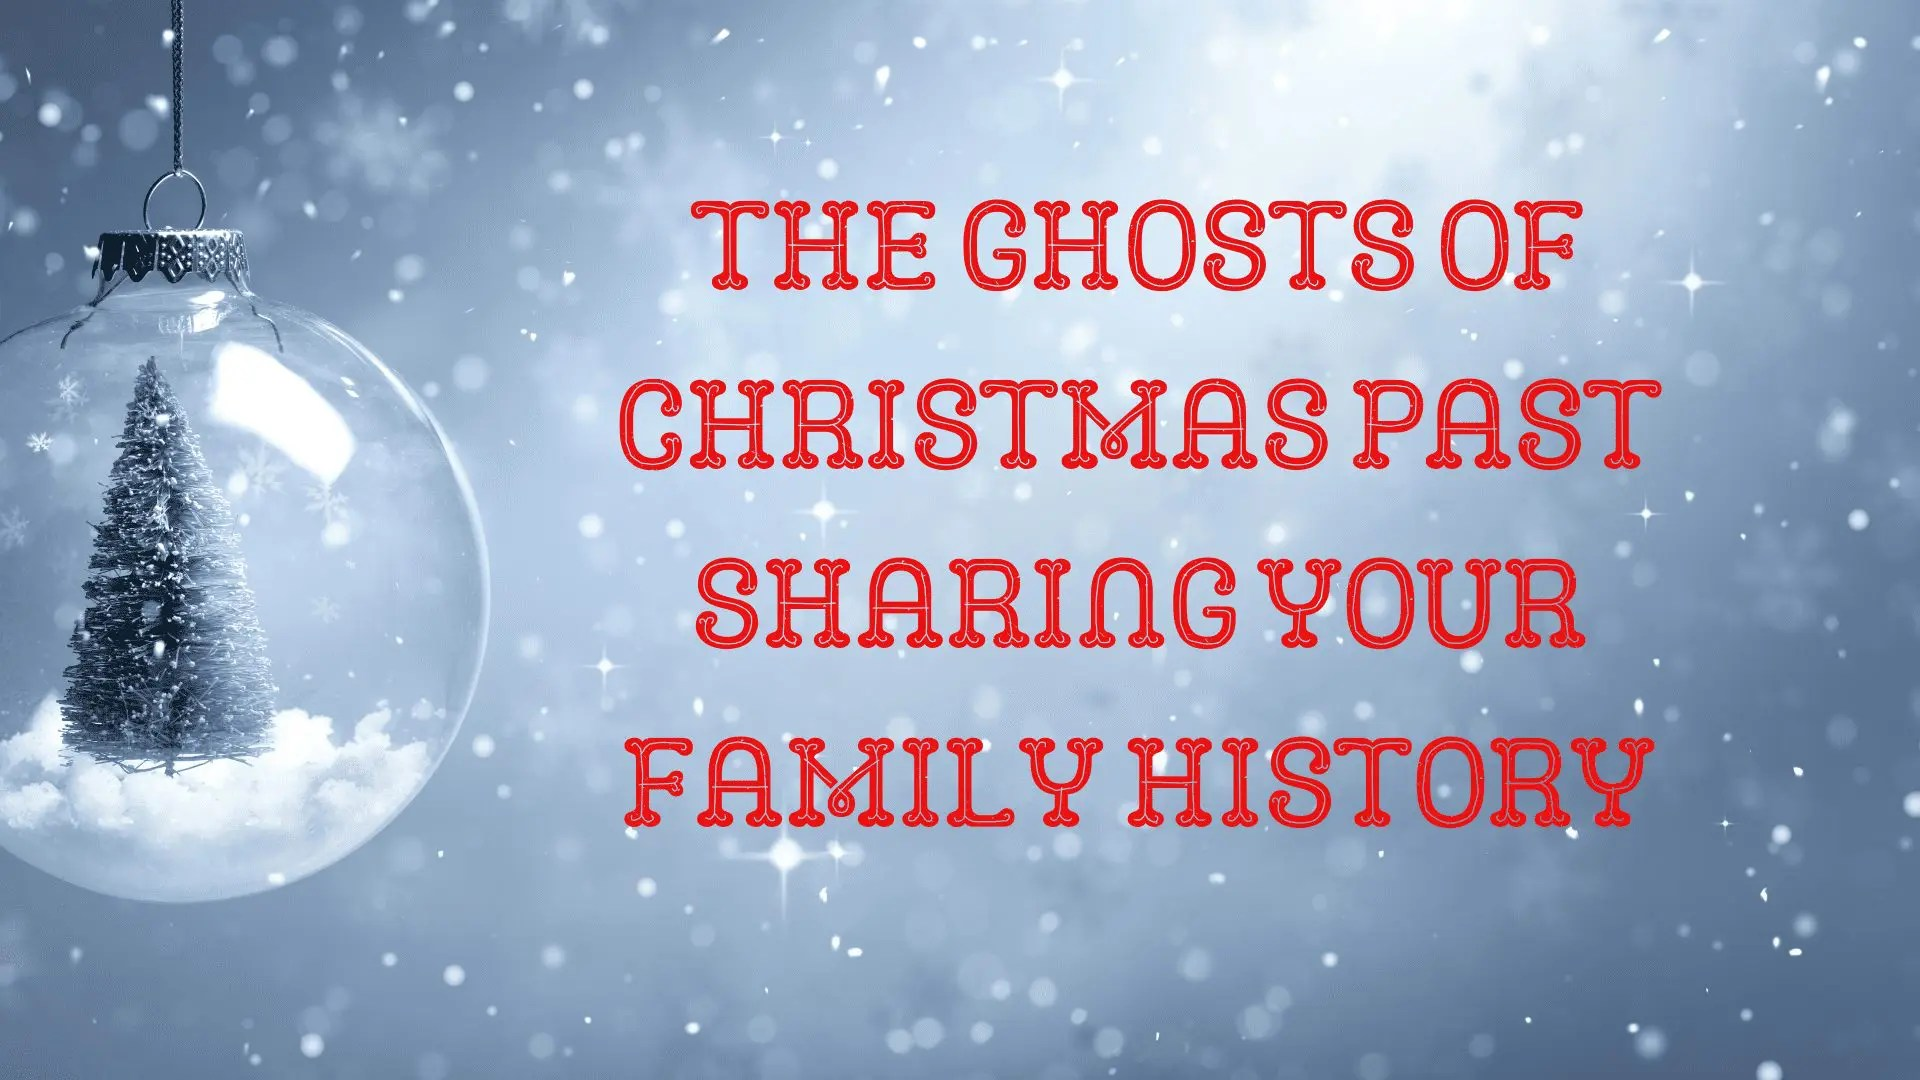 The Ghosts of Christmas Past Sharing Your Family History